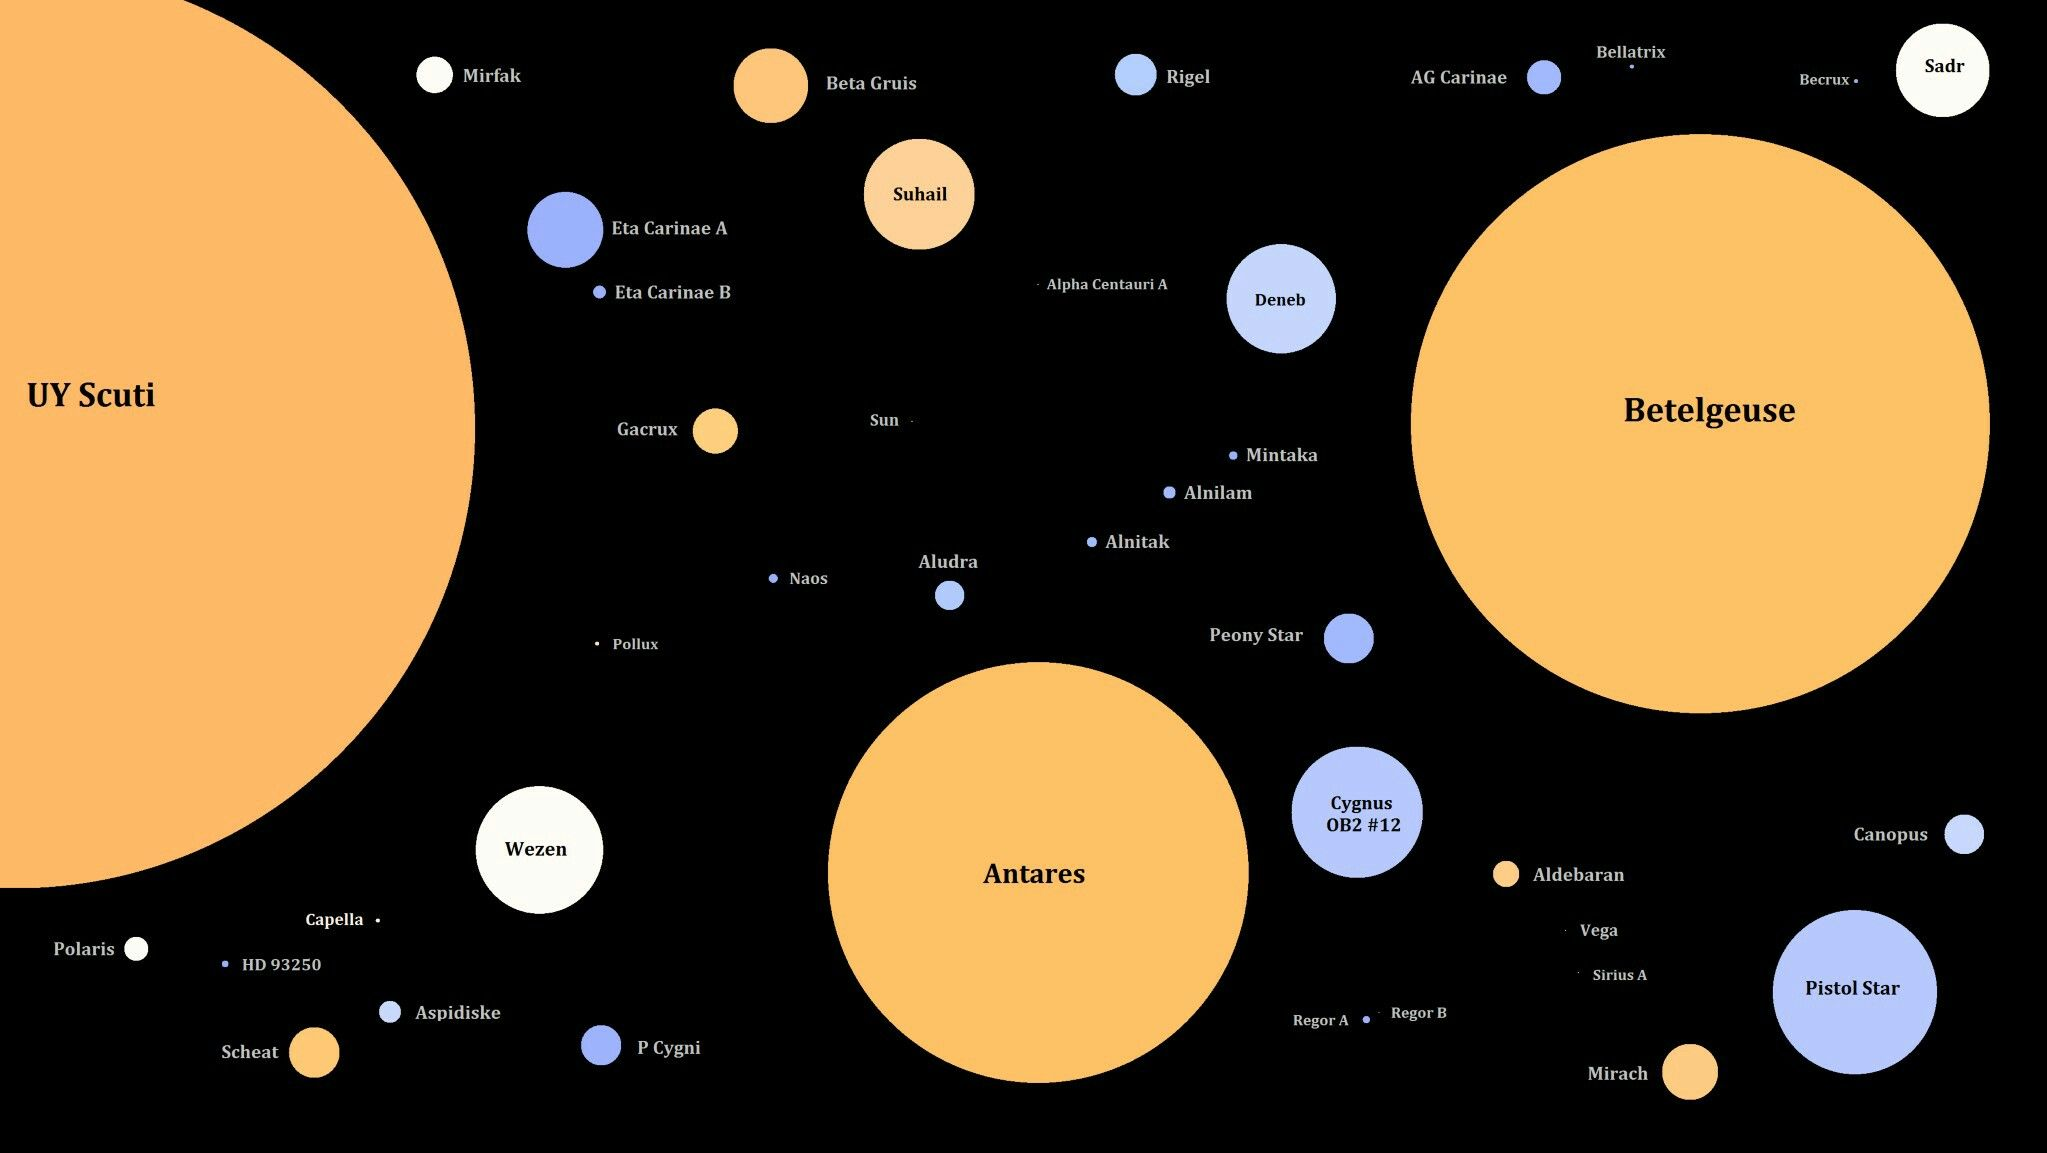 medium resolution of size comparison of many well known stars sizes are to scale in relation to each other the sun is an indiscernible speck in the middle about the size of